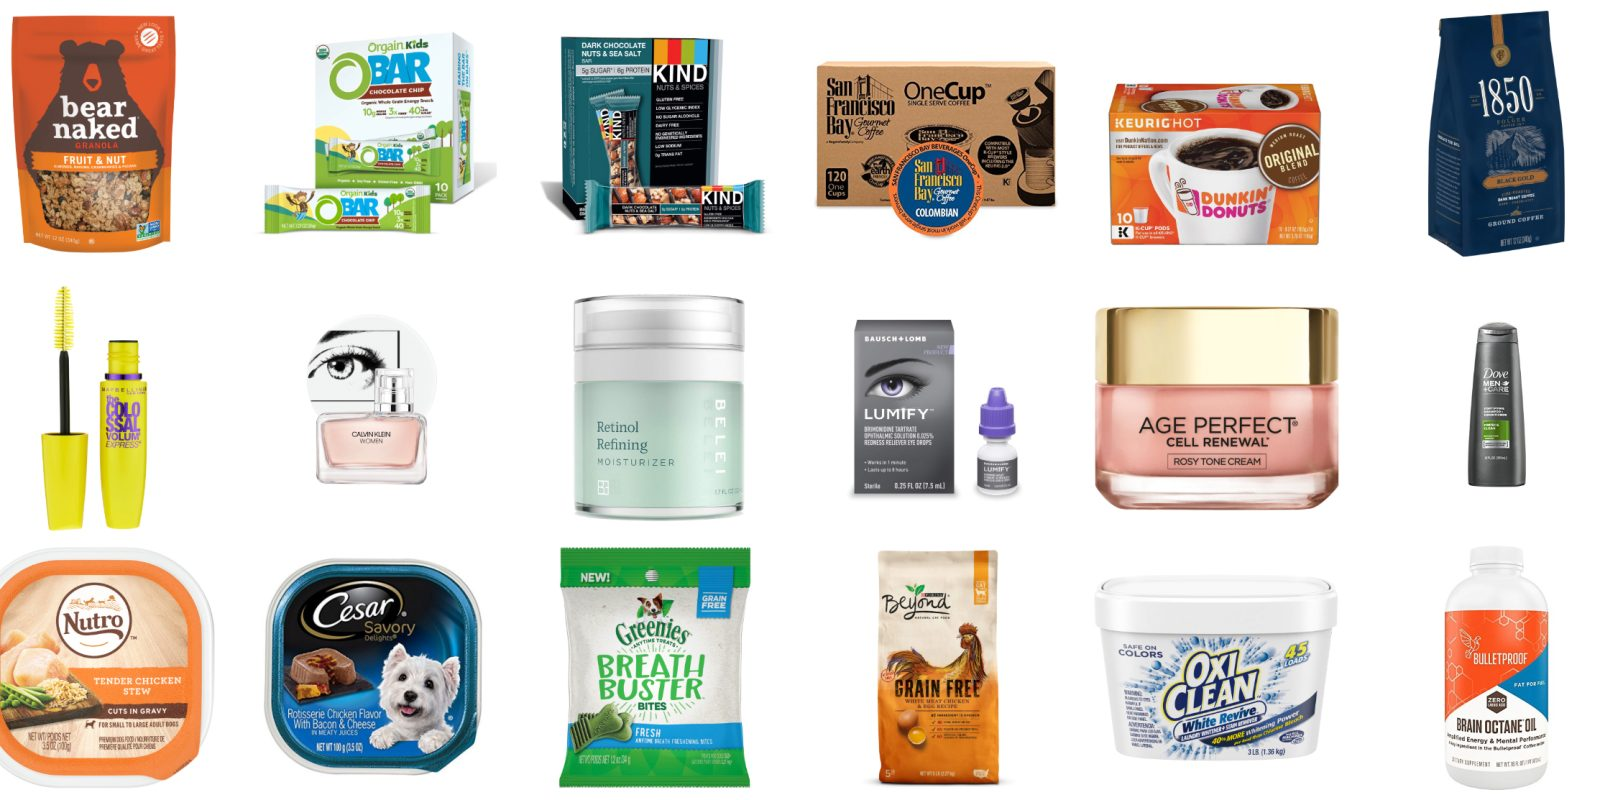 Amazon sample program: Everything you need to know to get freebies and more